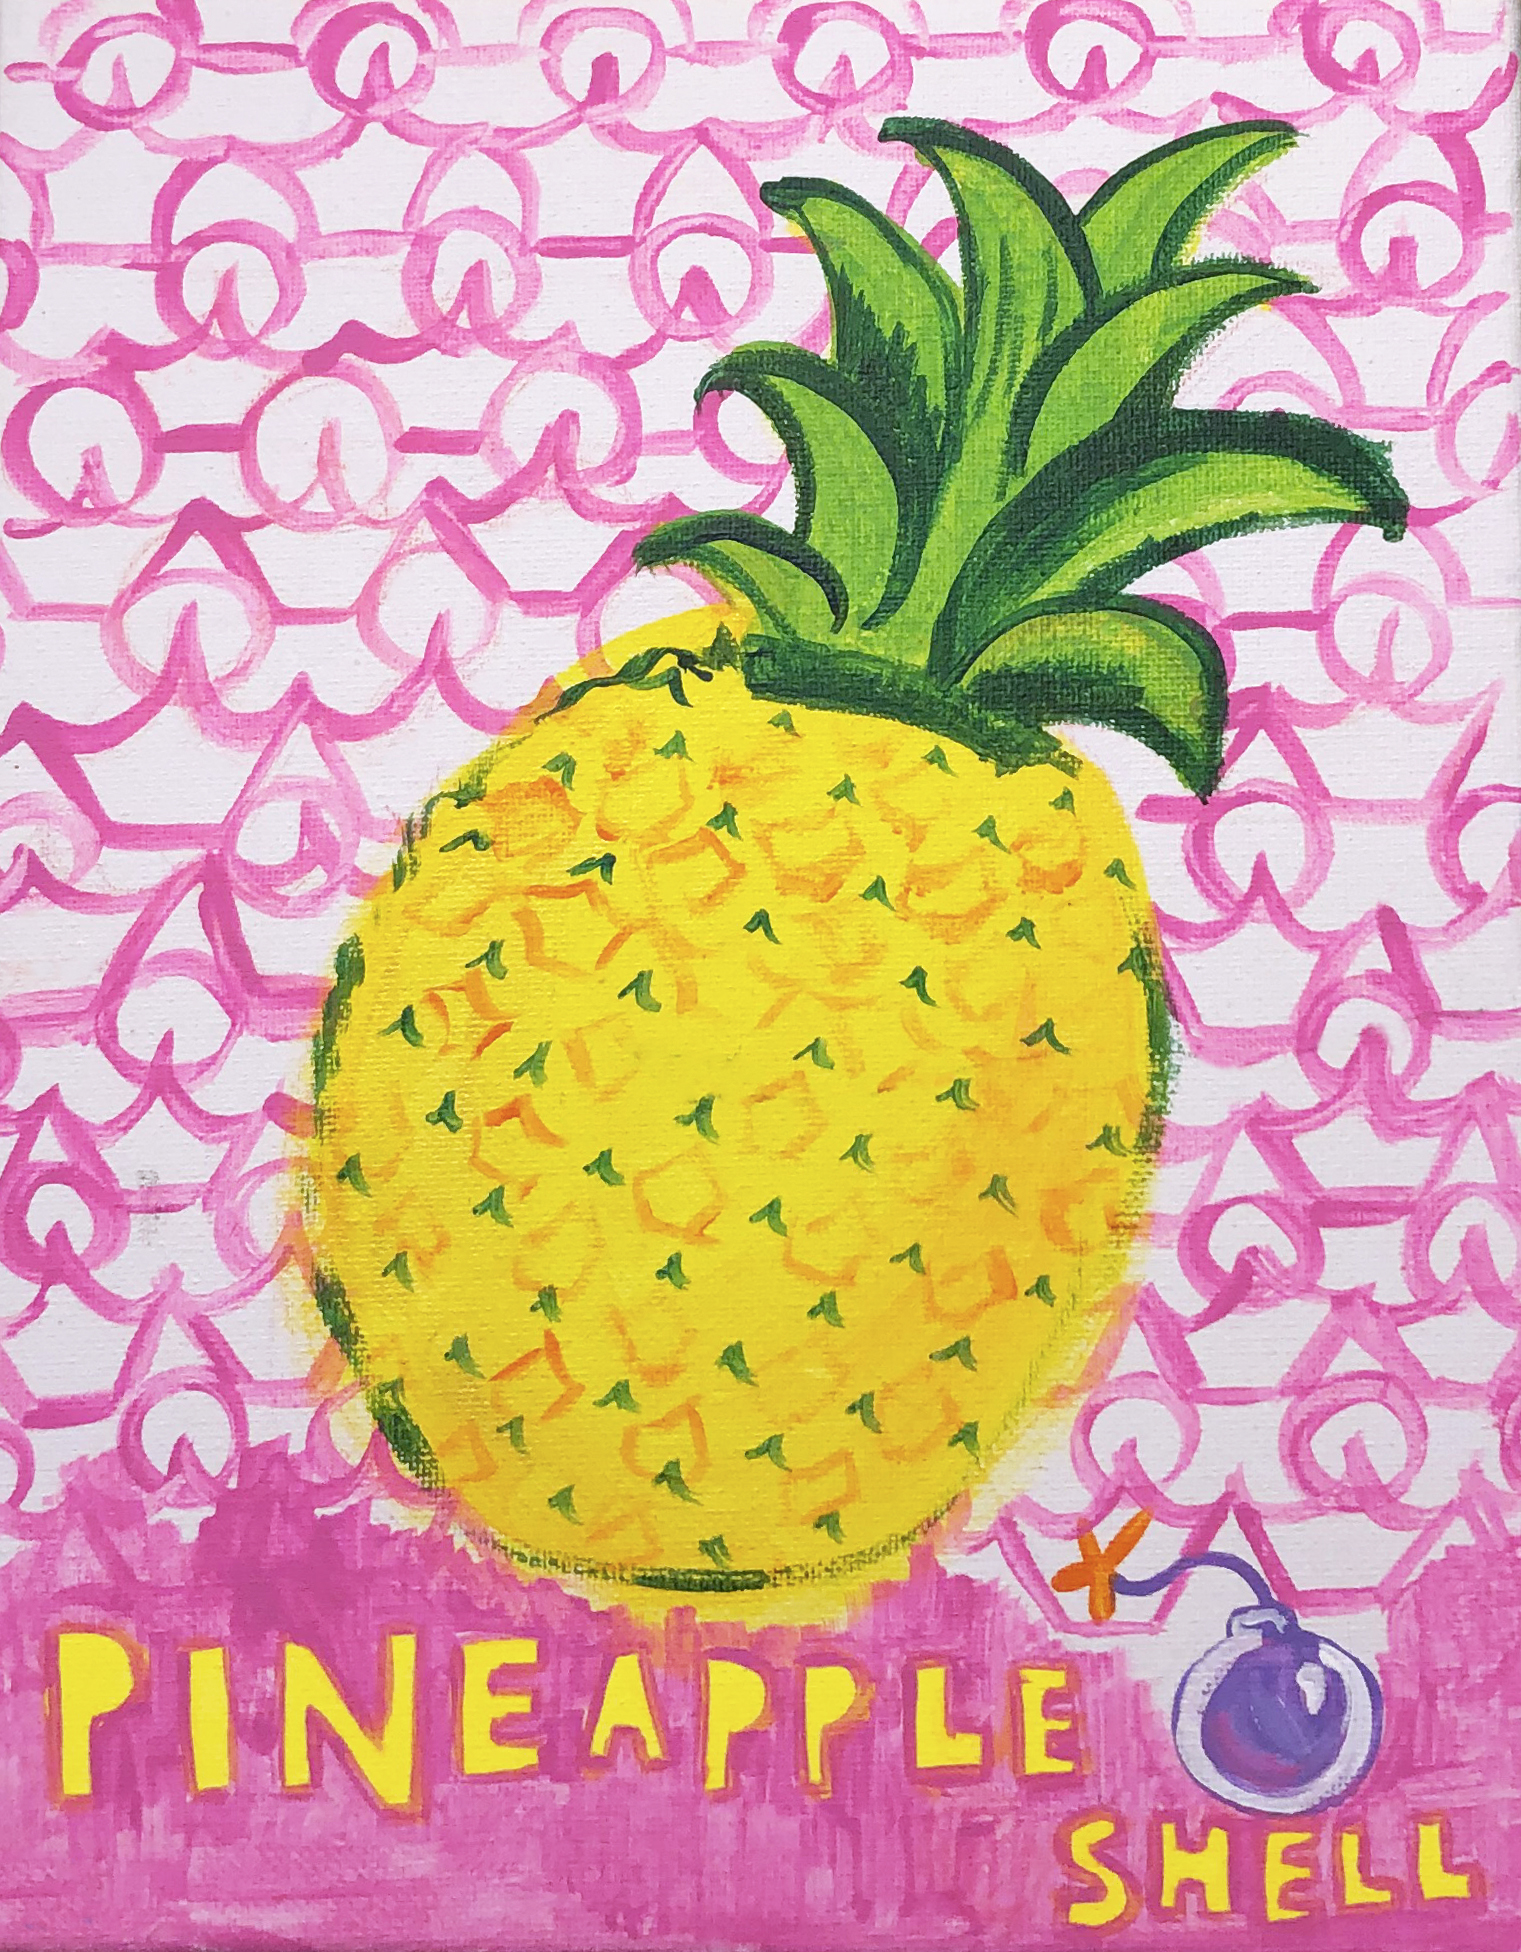 pineapple bombshell